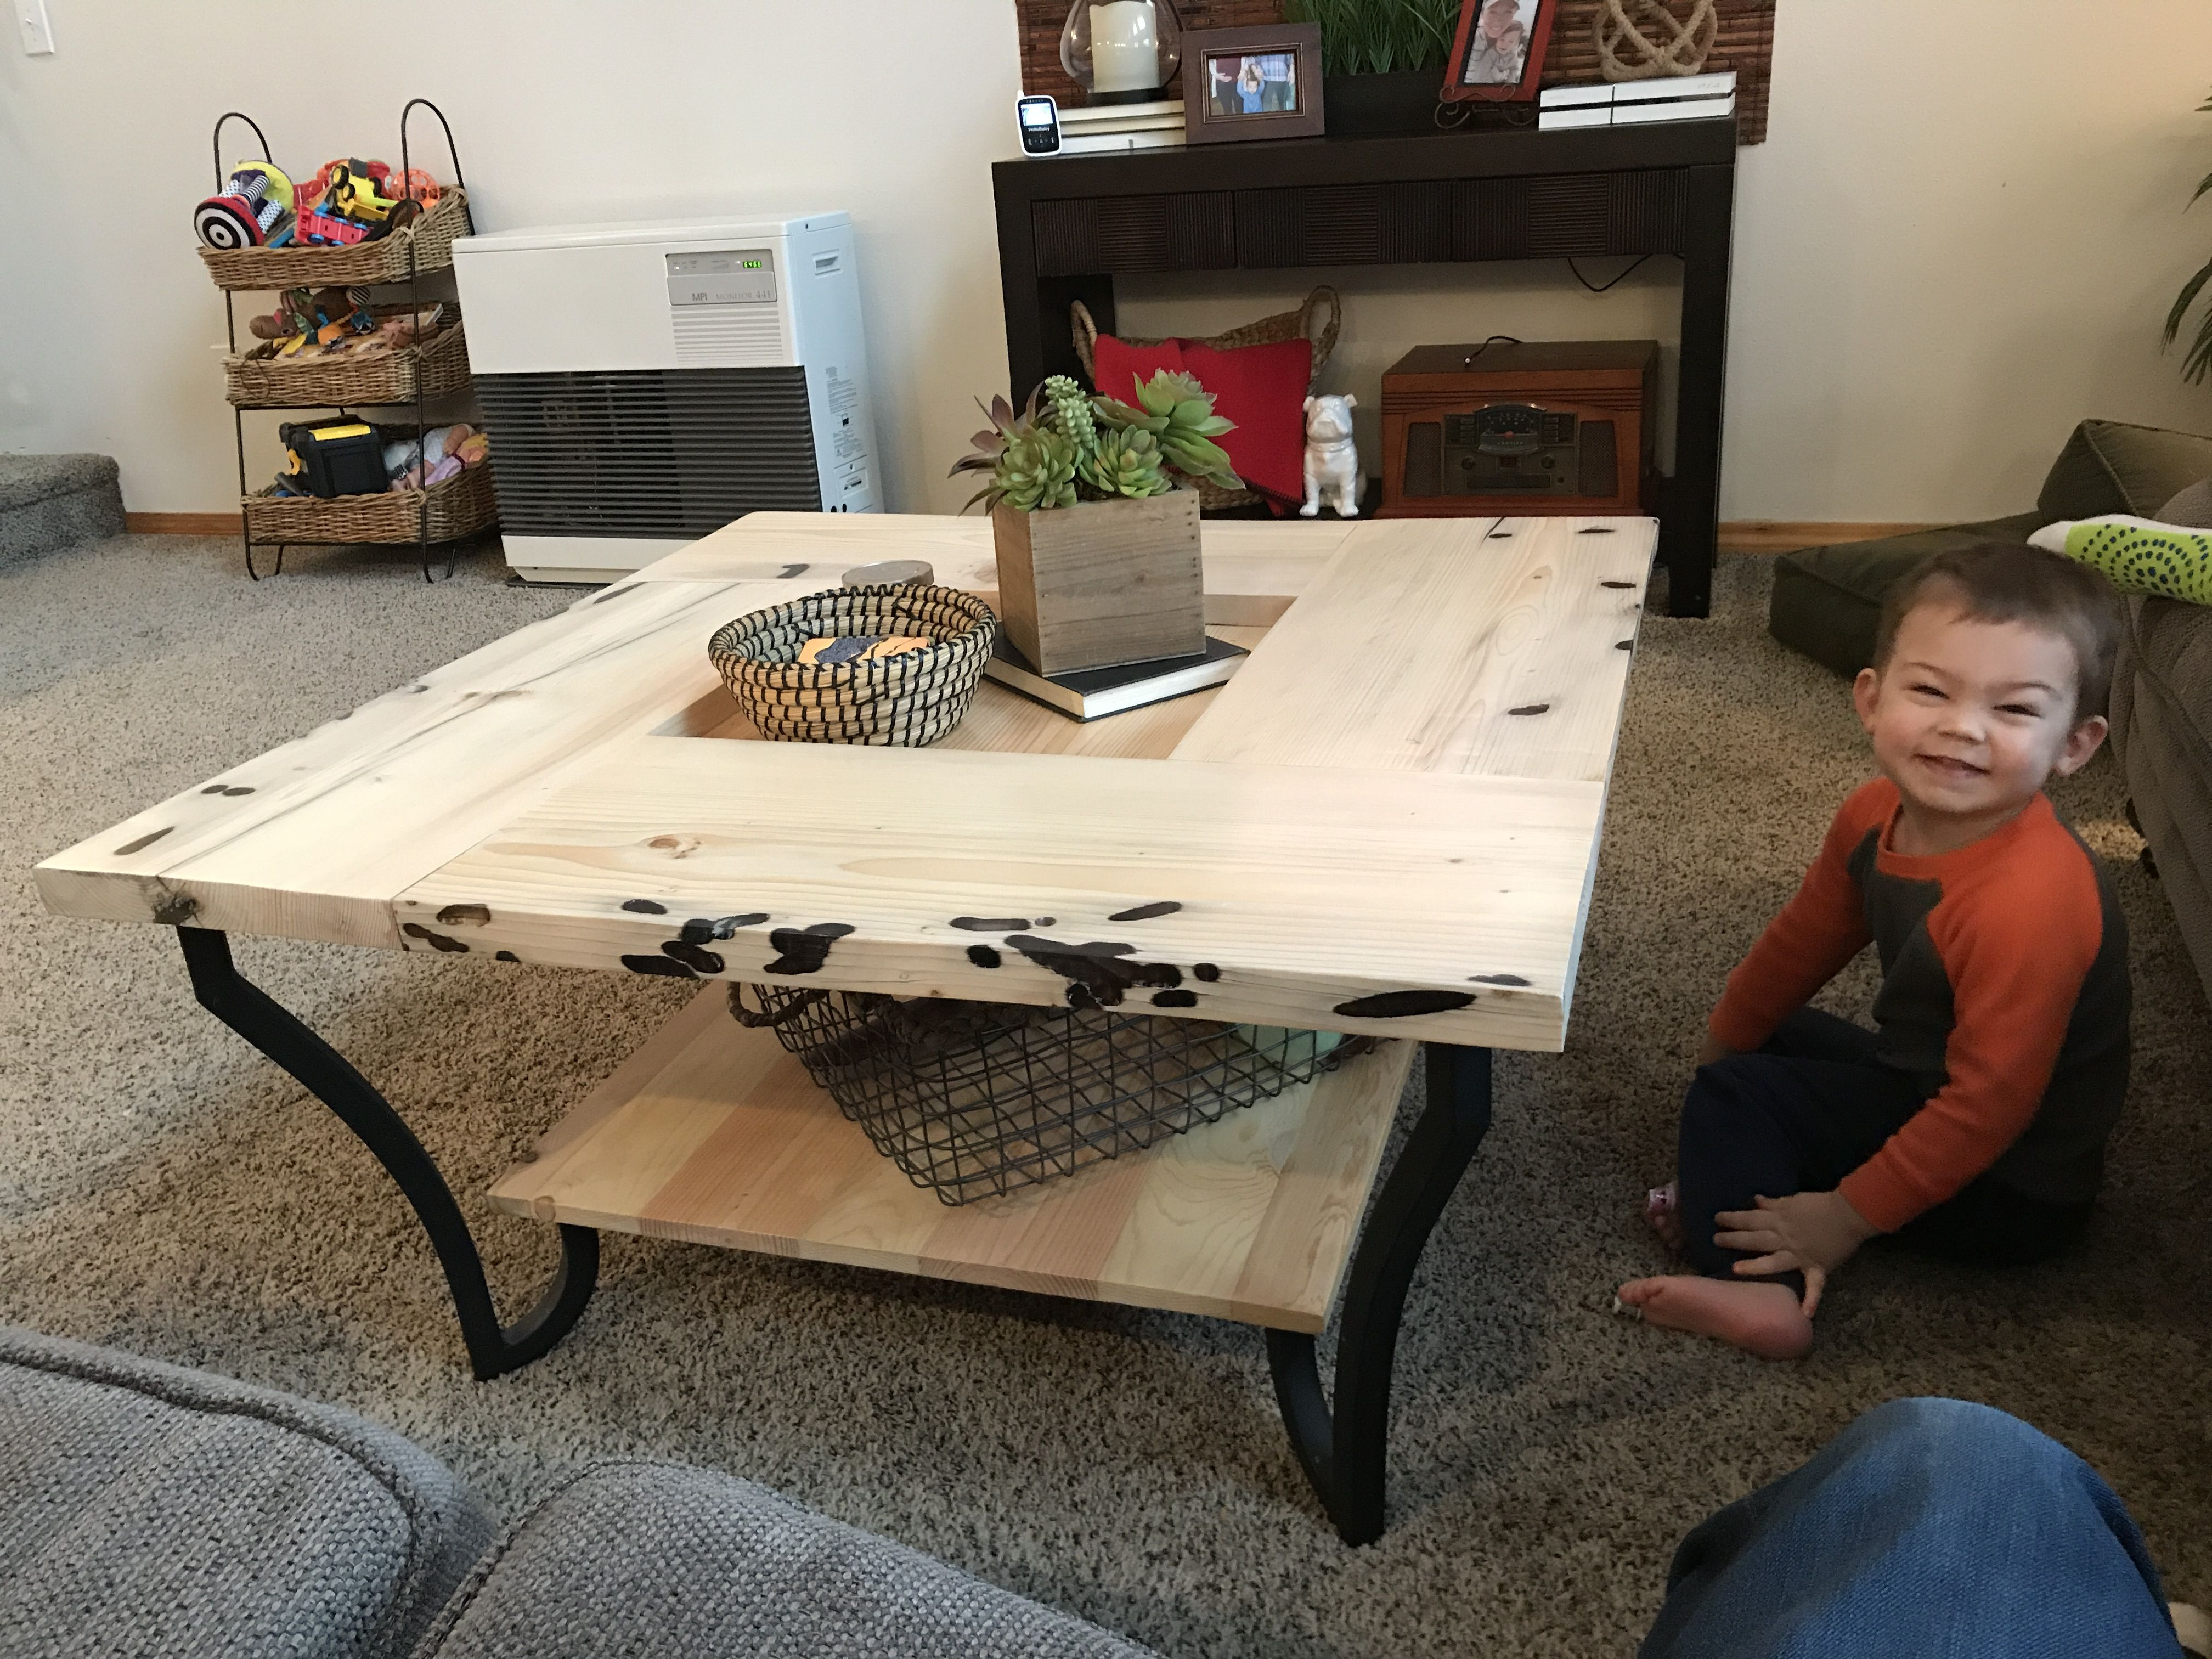 Pin by D J Bovard on Design | Table, Furniture, Wood